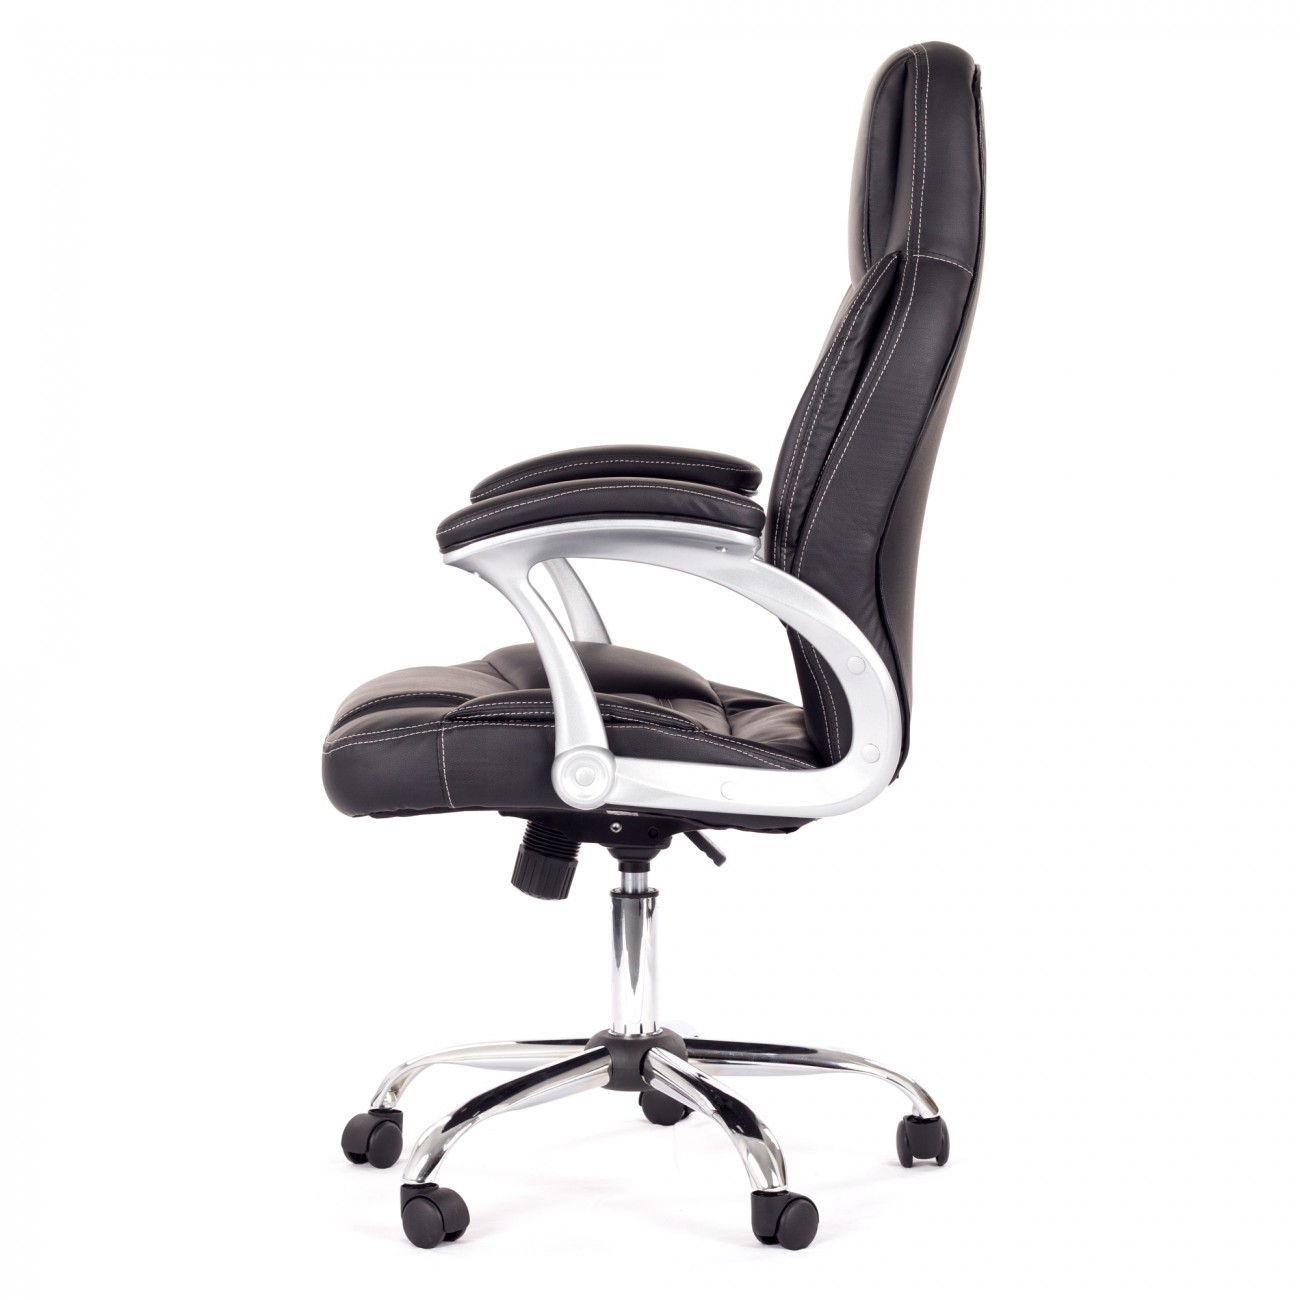 Office Chair Executive Computer Desk adjustable Armrest